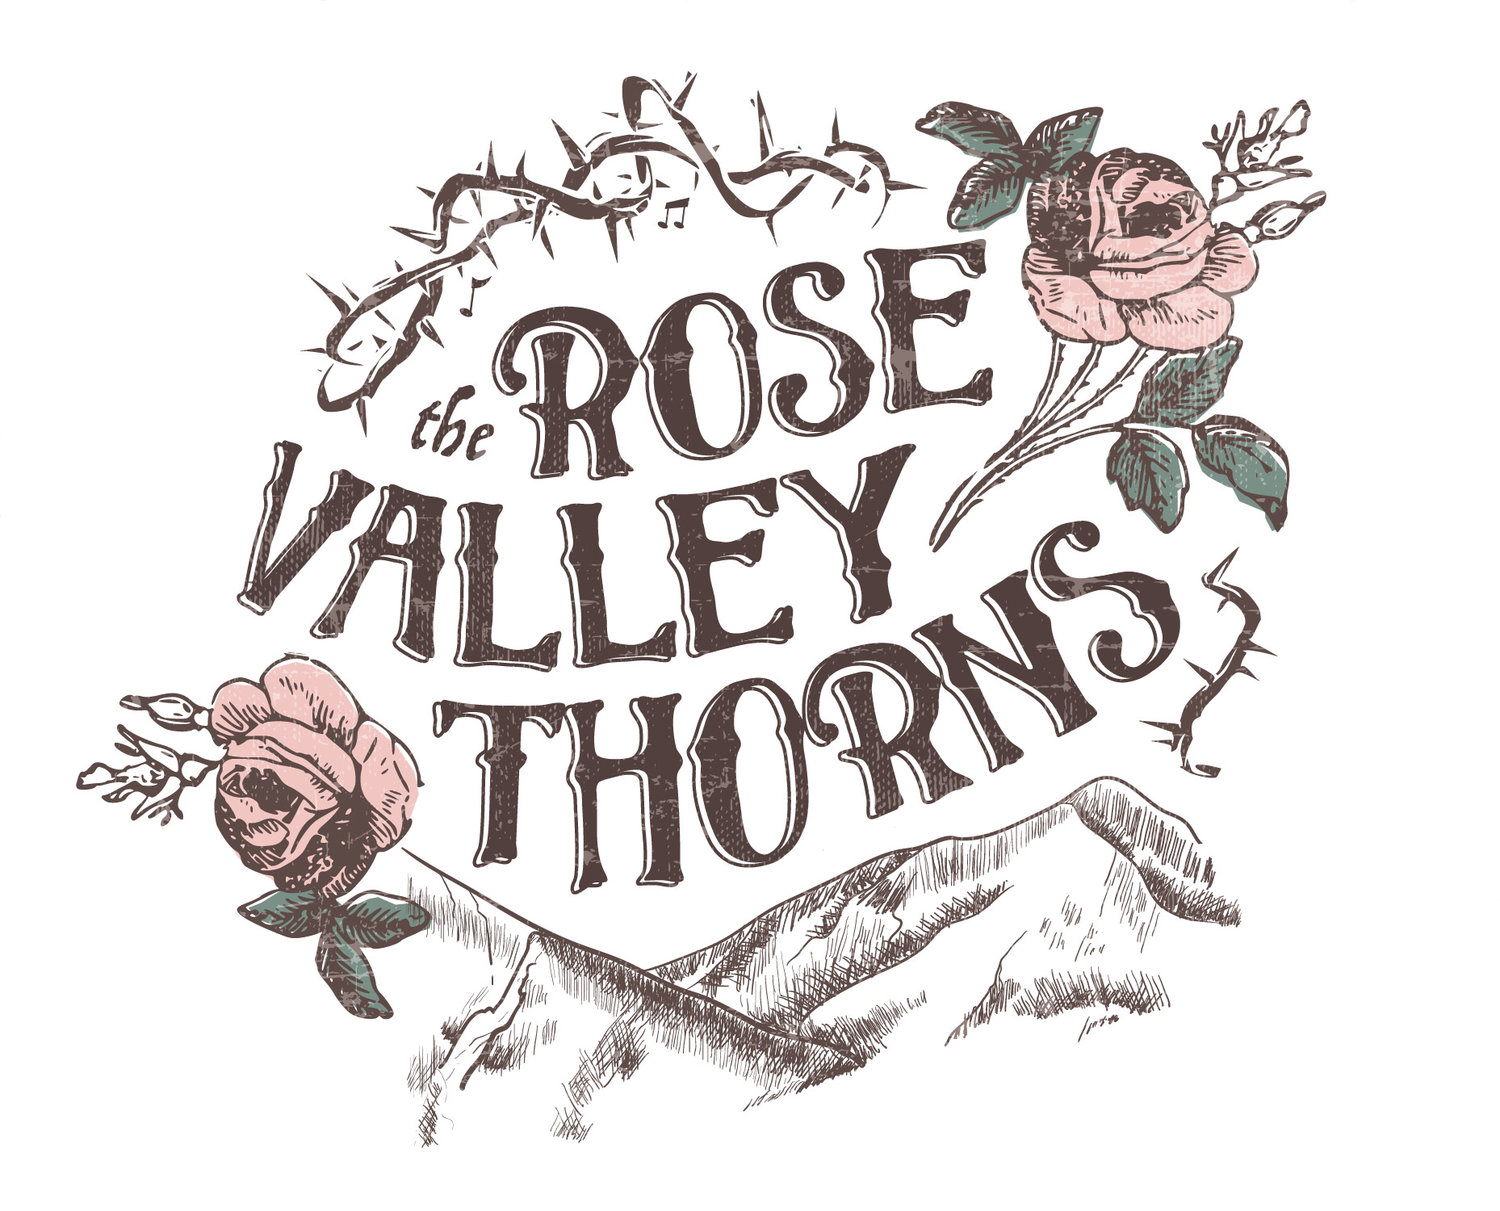 The Rose Valley Thorns